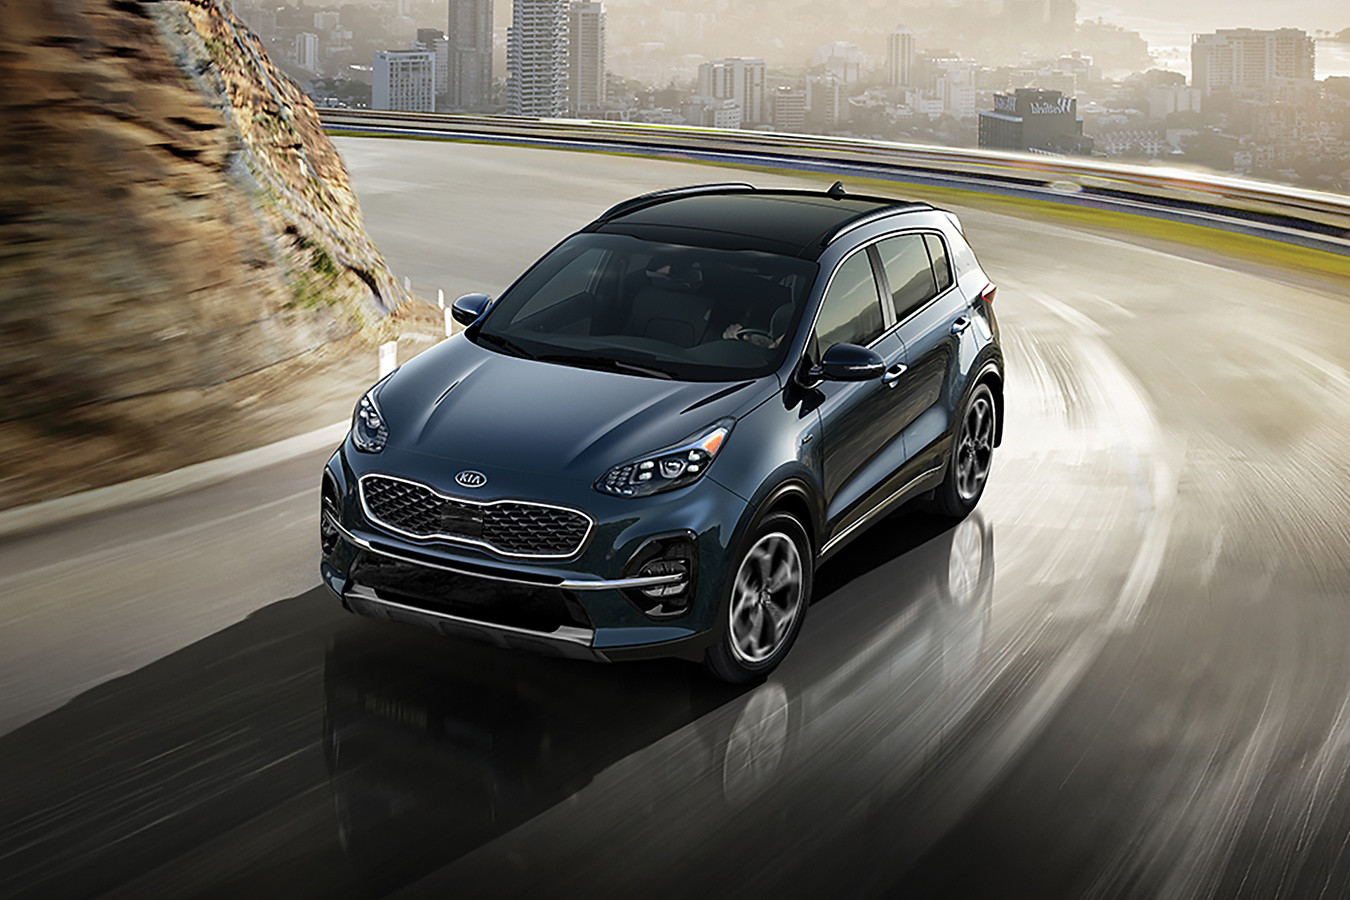 2020 Kia Sportage for Sale near Bedford, OH